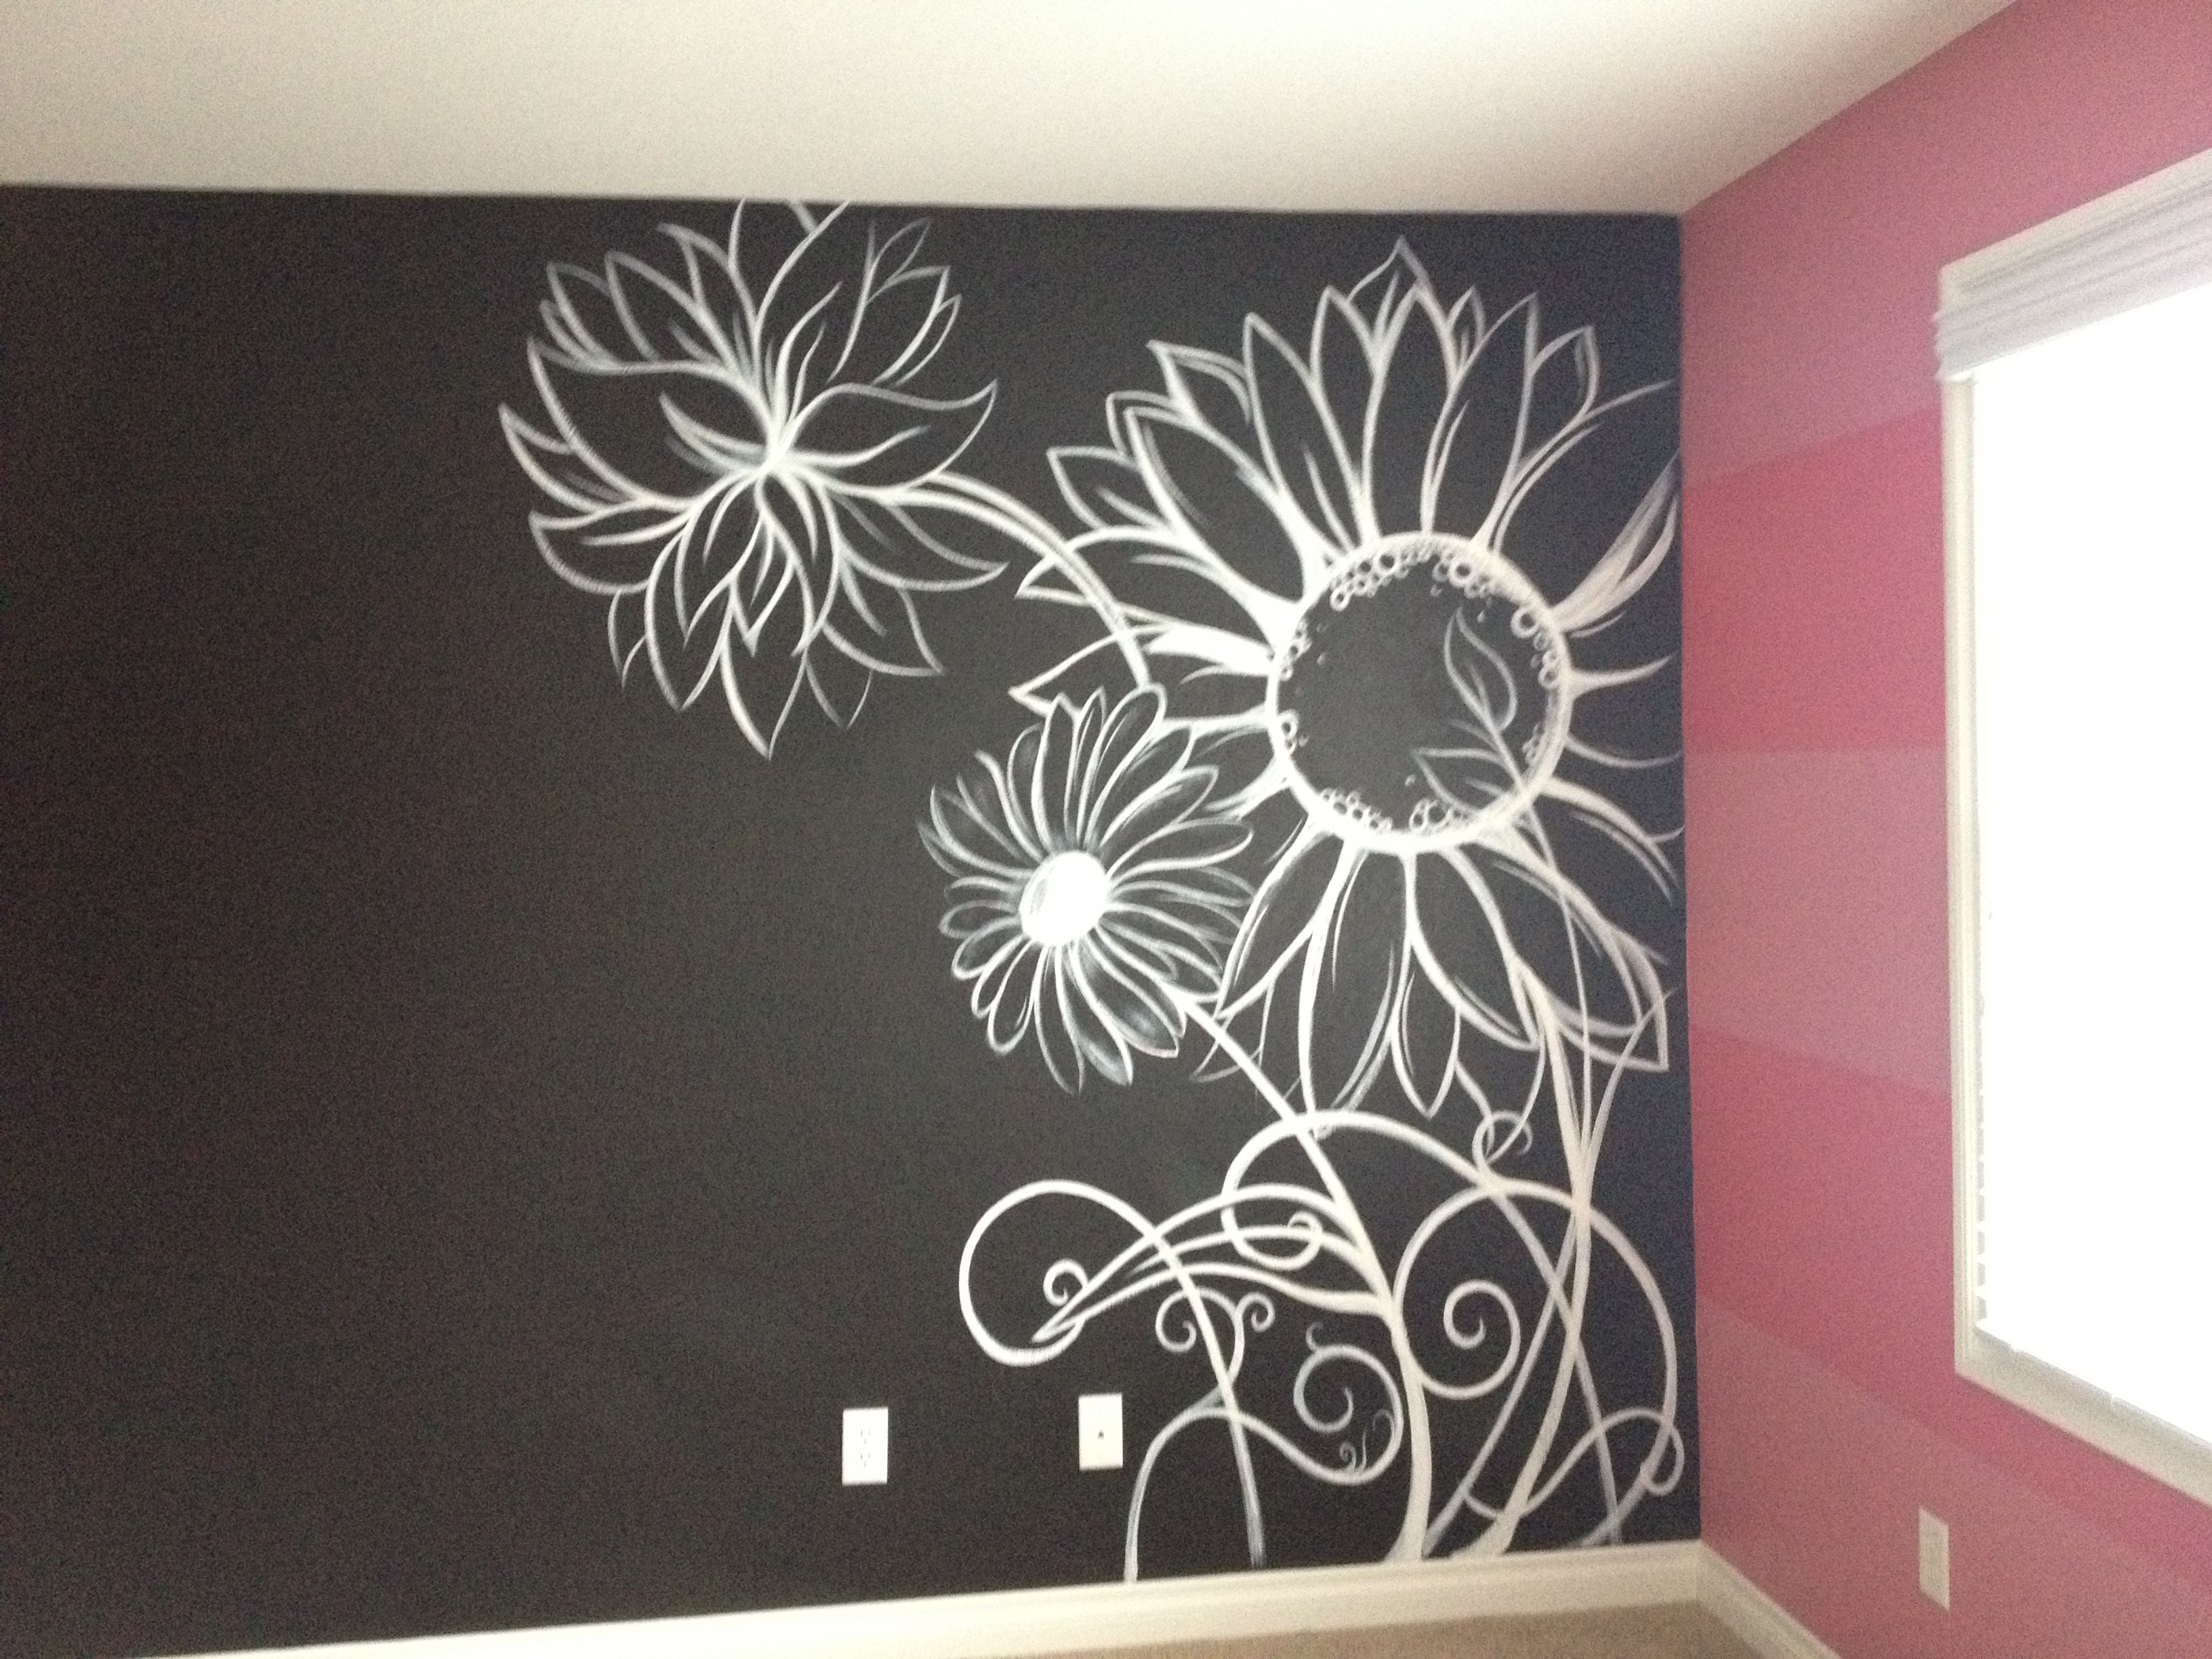 3 Striped Walls One Black Accent Wall With A Flower Mural Wall Painting Flowers Chalkboard Wall Art Mandala Wall Art